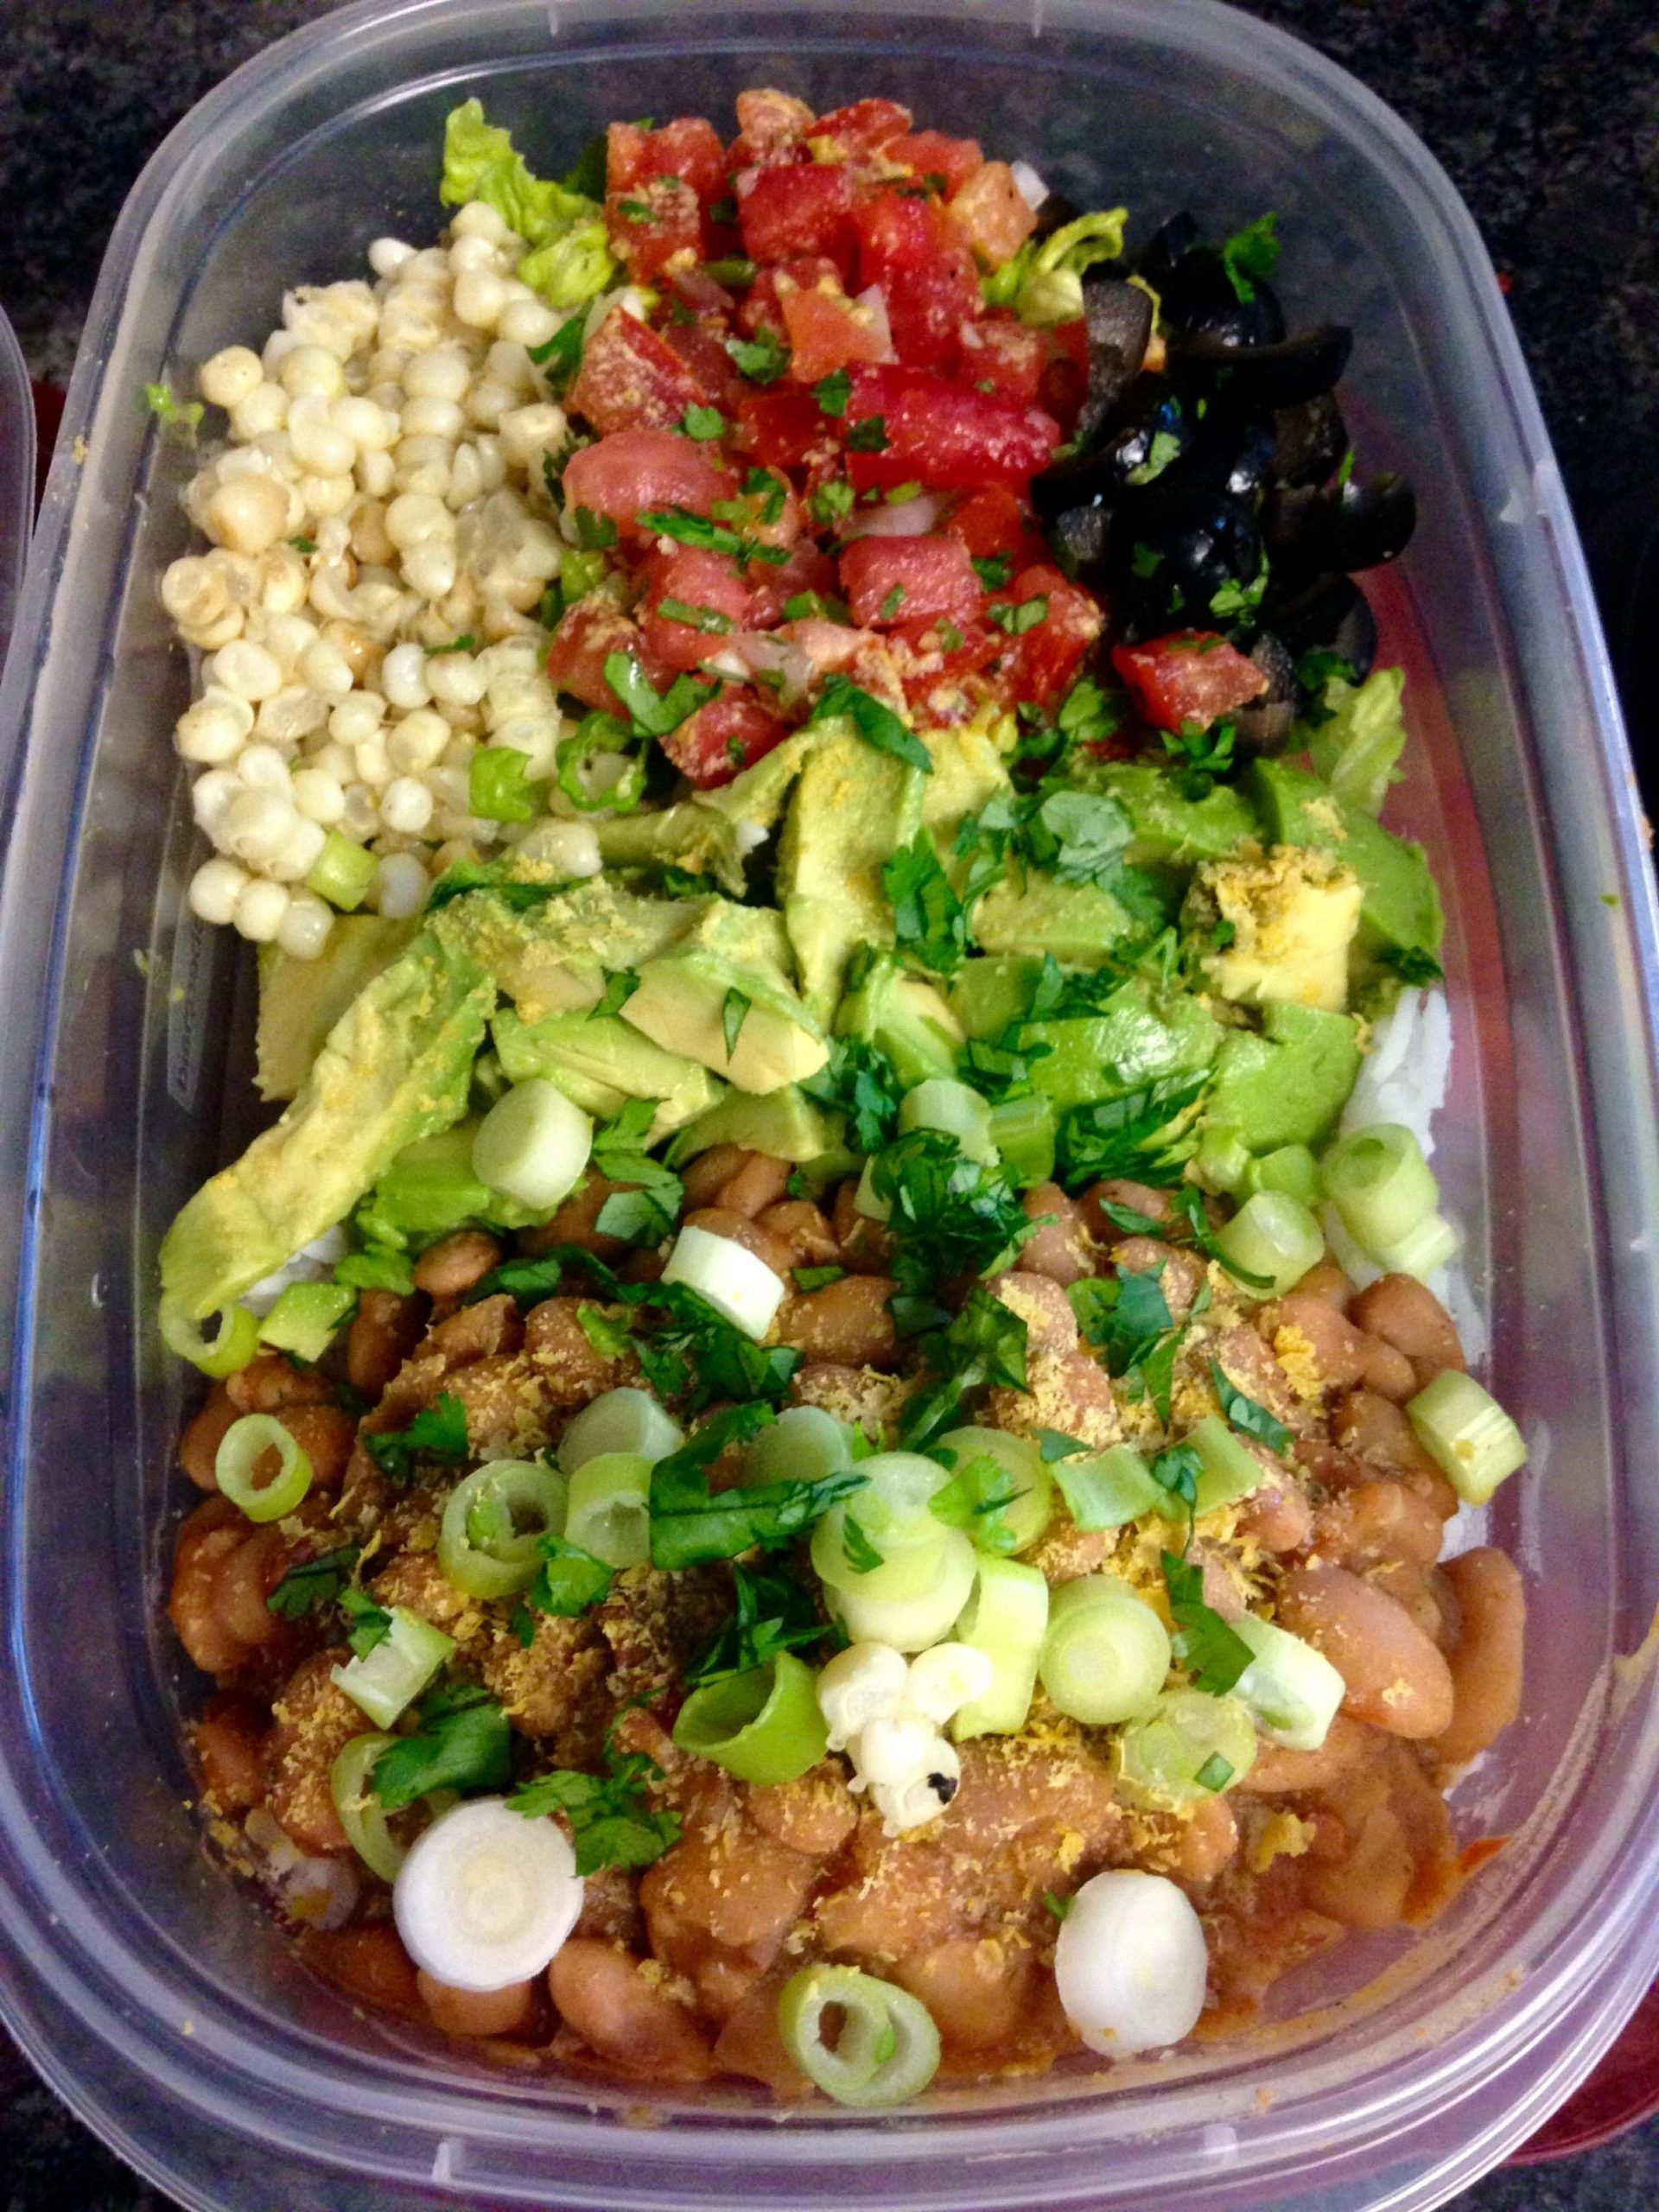 Vegan/Vegetarian burrito bowl meal prep : MealPrepSunday - Recipes Vegan Reddit